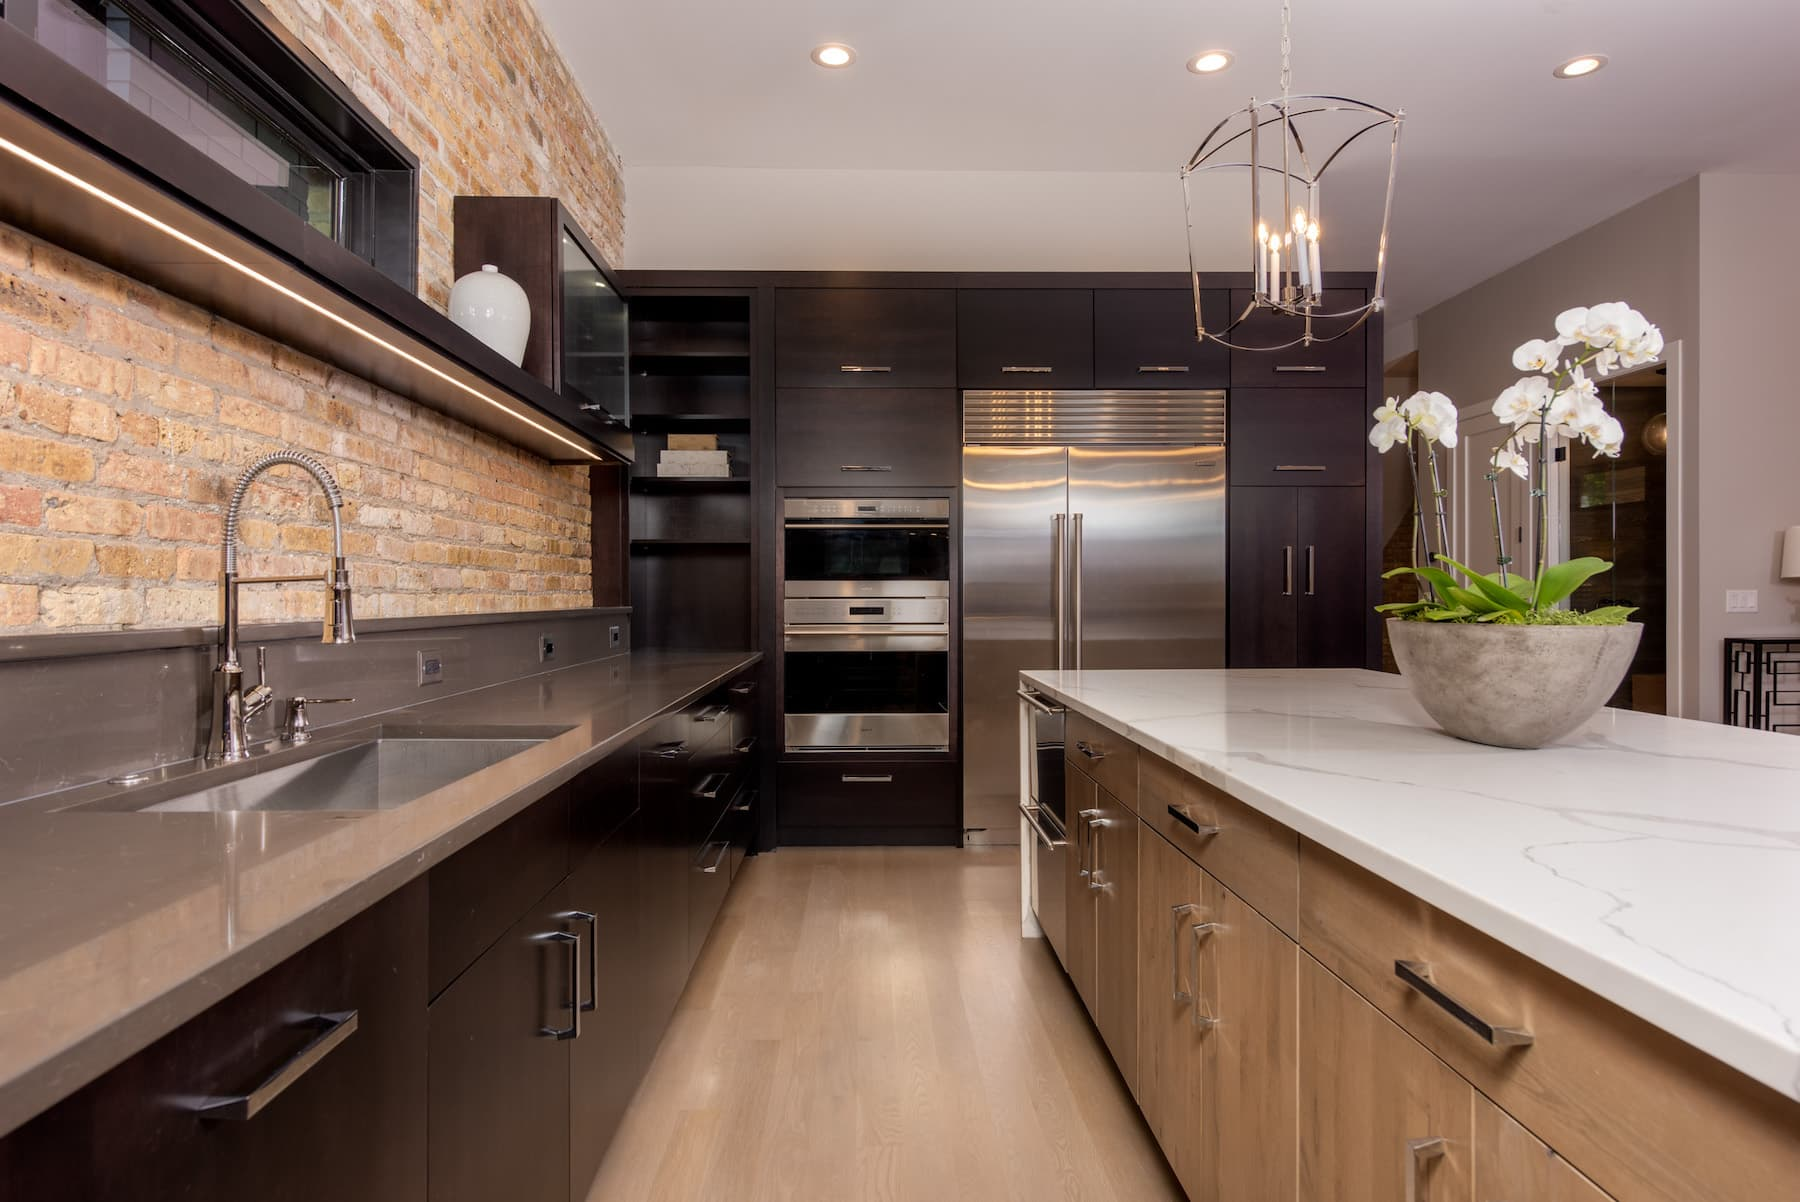 Renovated Kitchen New Island Cabinets Lincoln Park Chicago